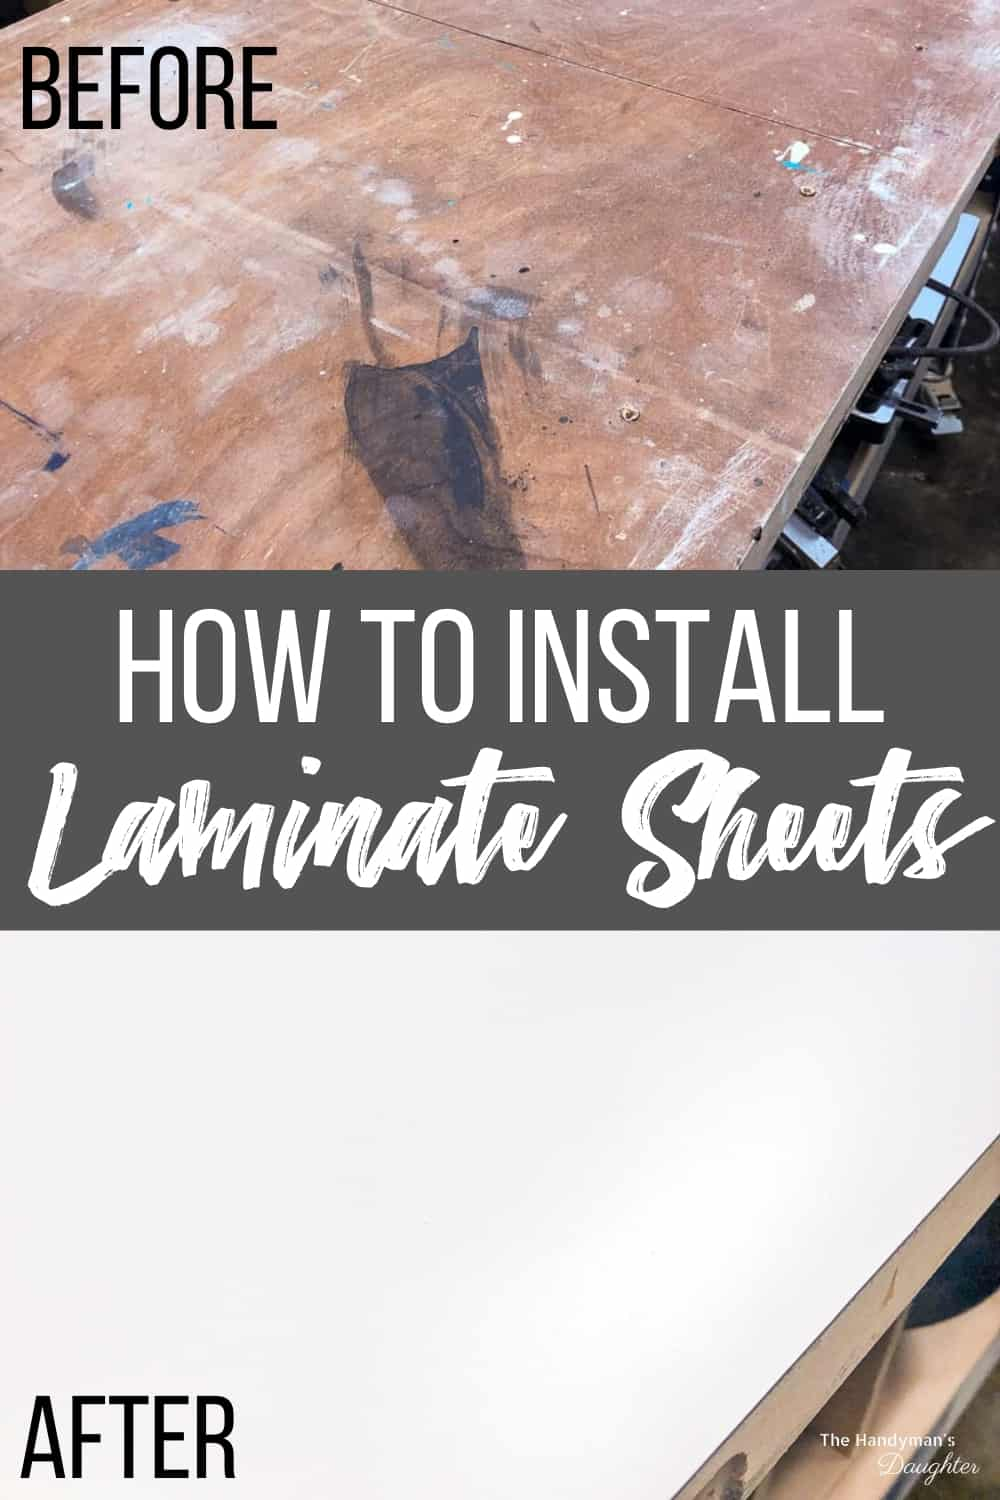 How to install laminate sheets before and after photos